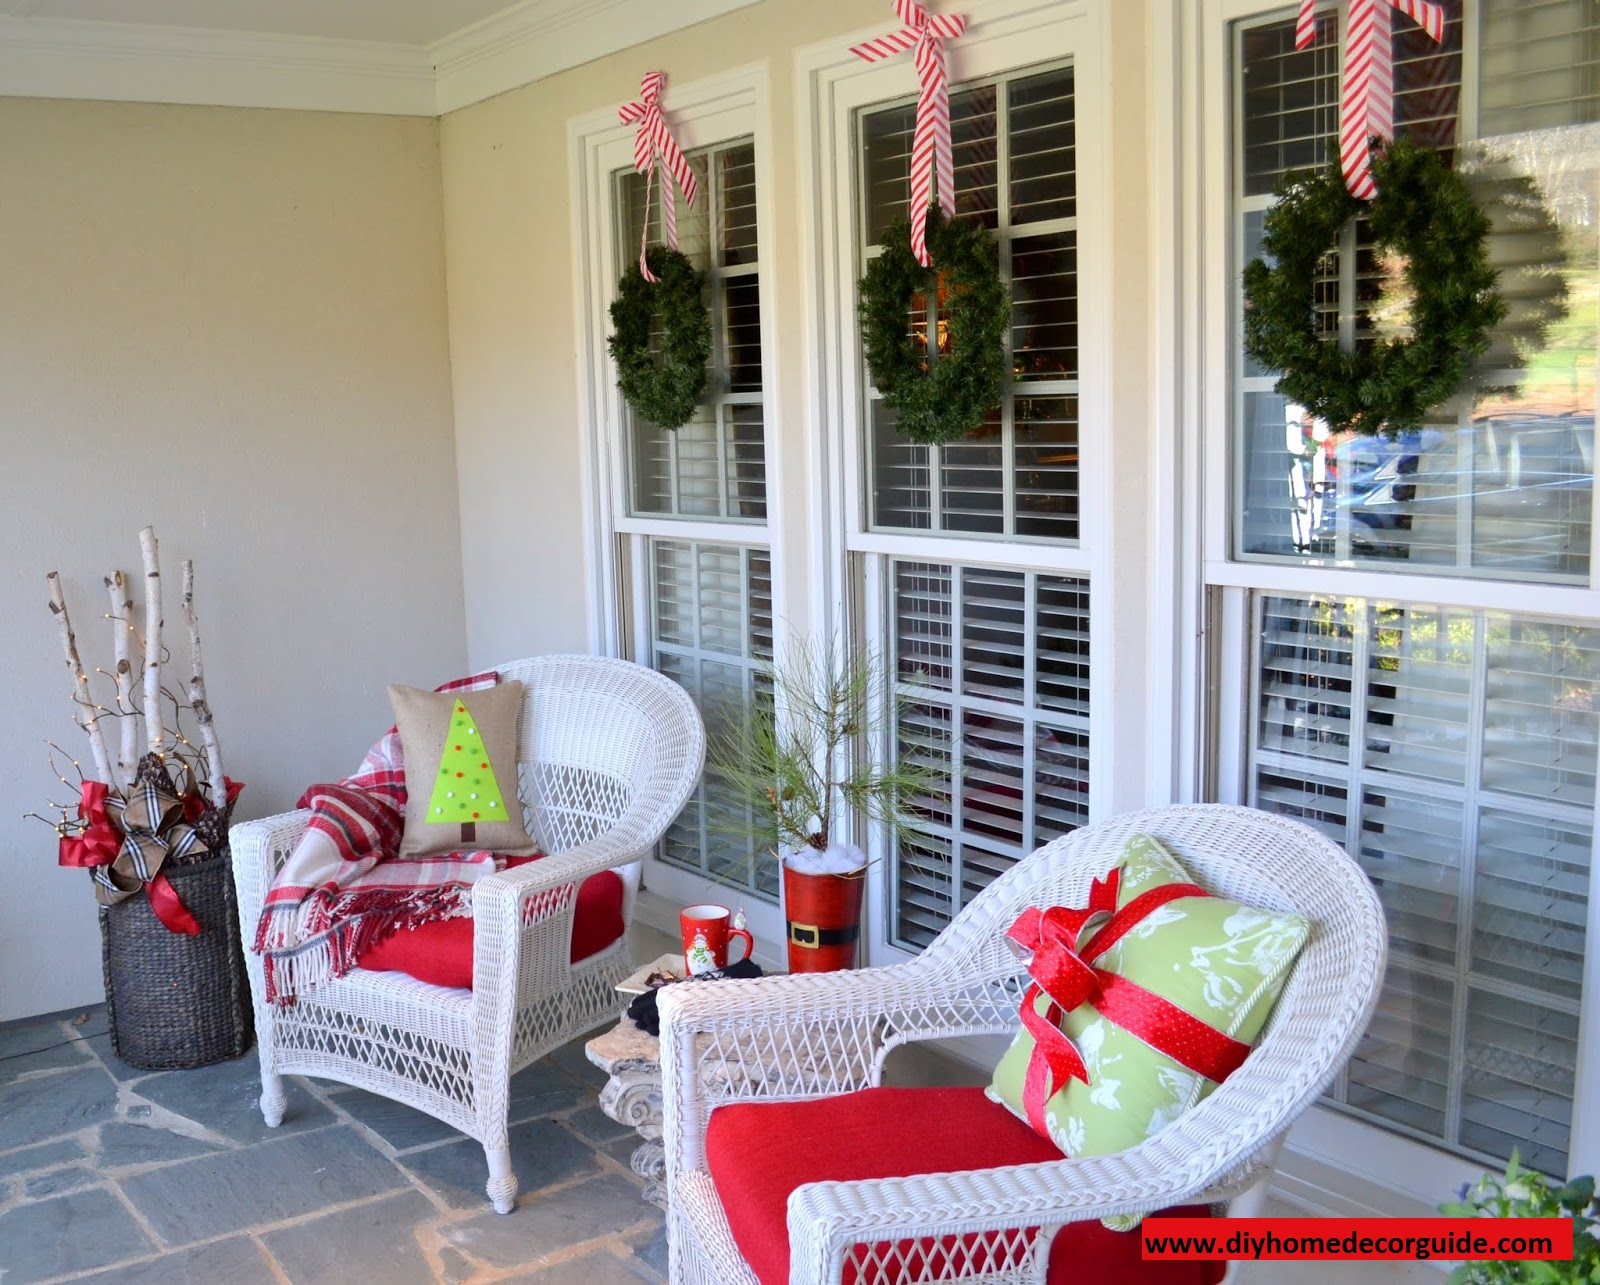 35+ Great Christmas Decorations Outdoor Ideas